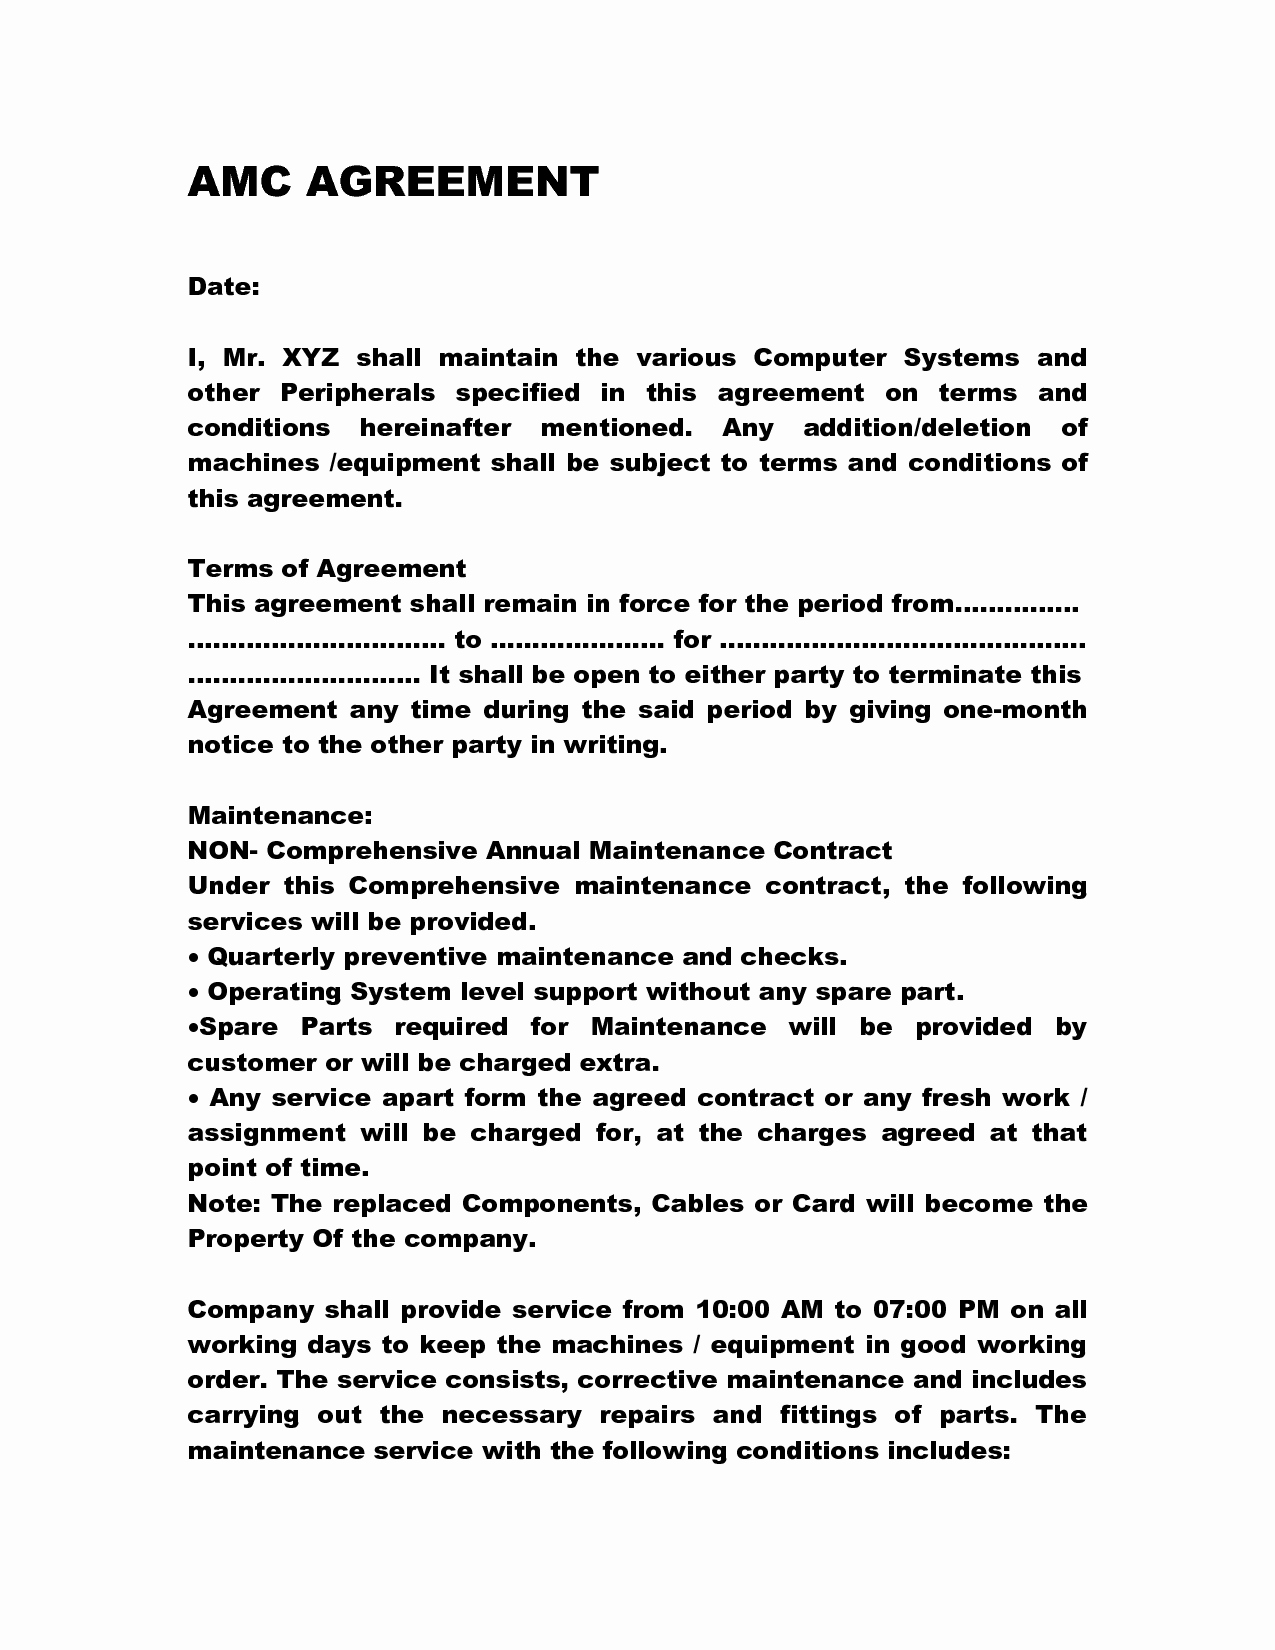 Service Agreement Template Doc Elegant Annual Maintenance Contract Doc by Anks13 Maintenance